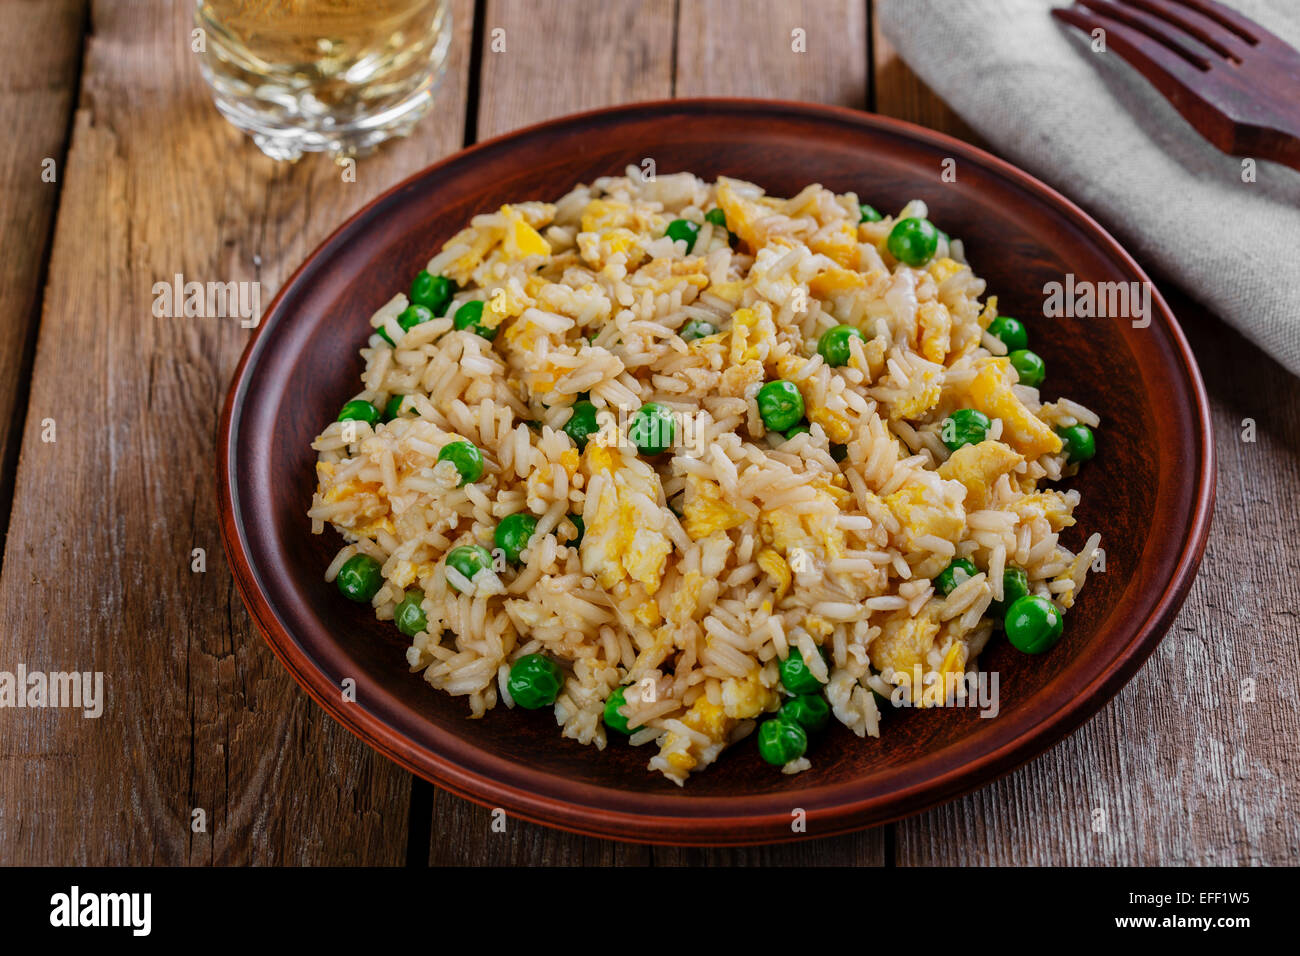 fried rice with egg and peas - Stock Image